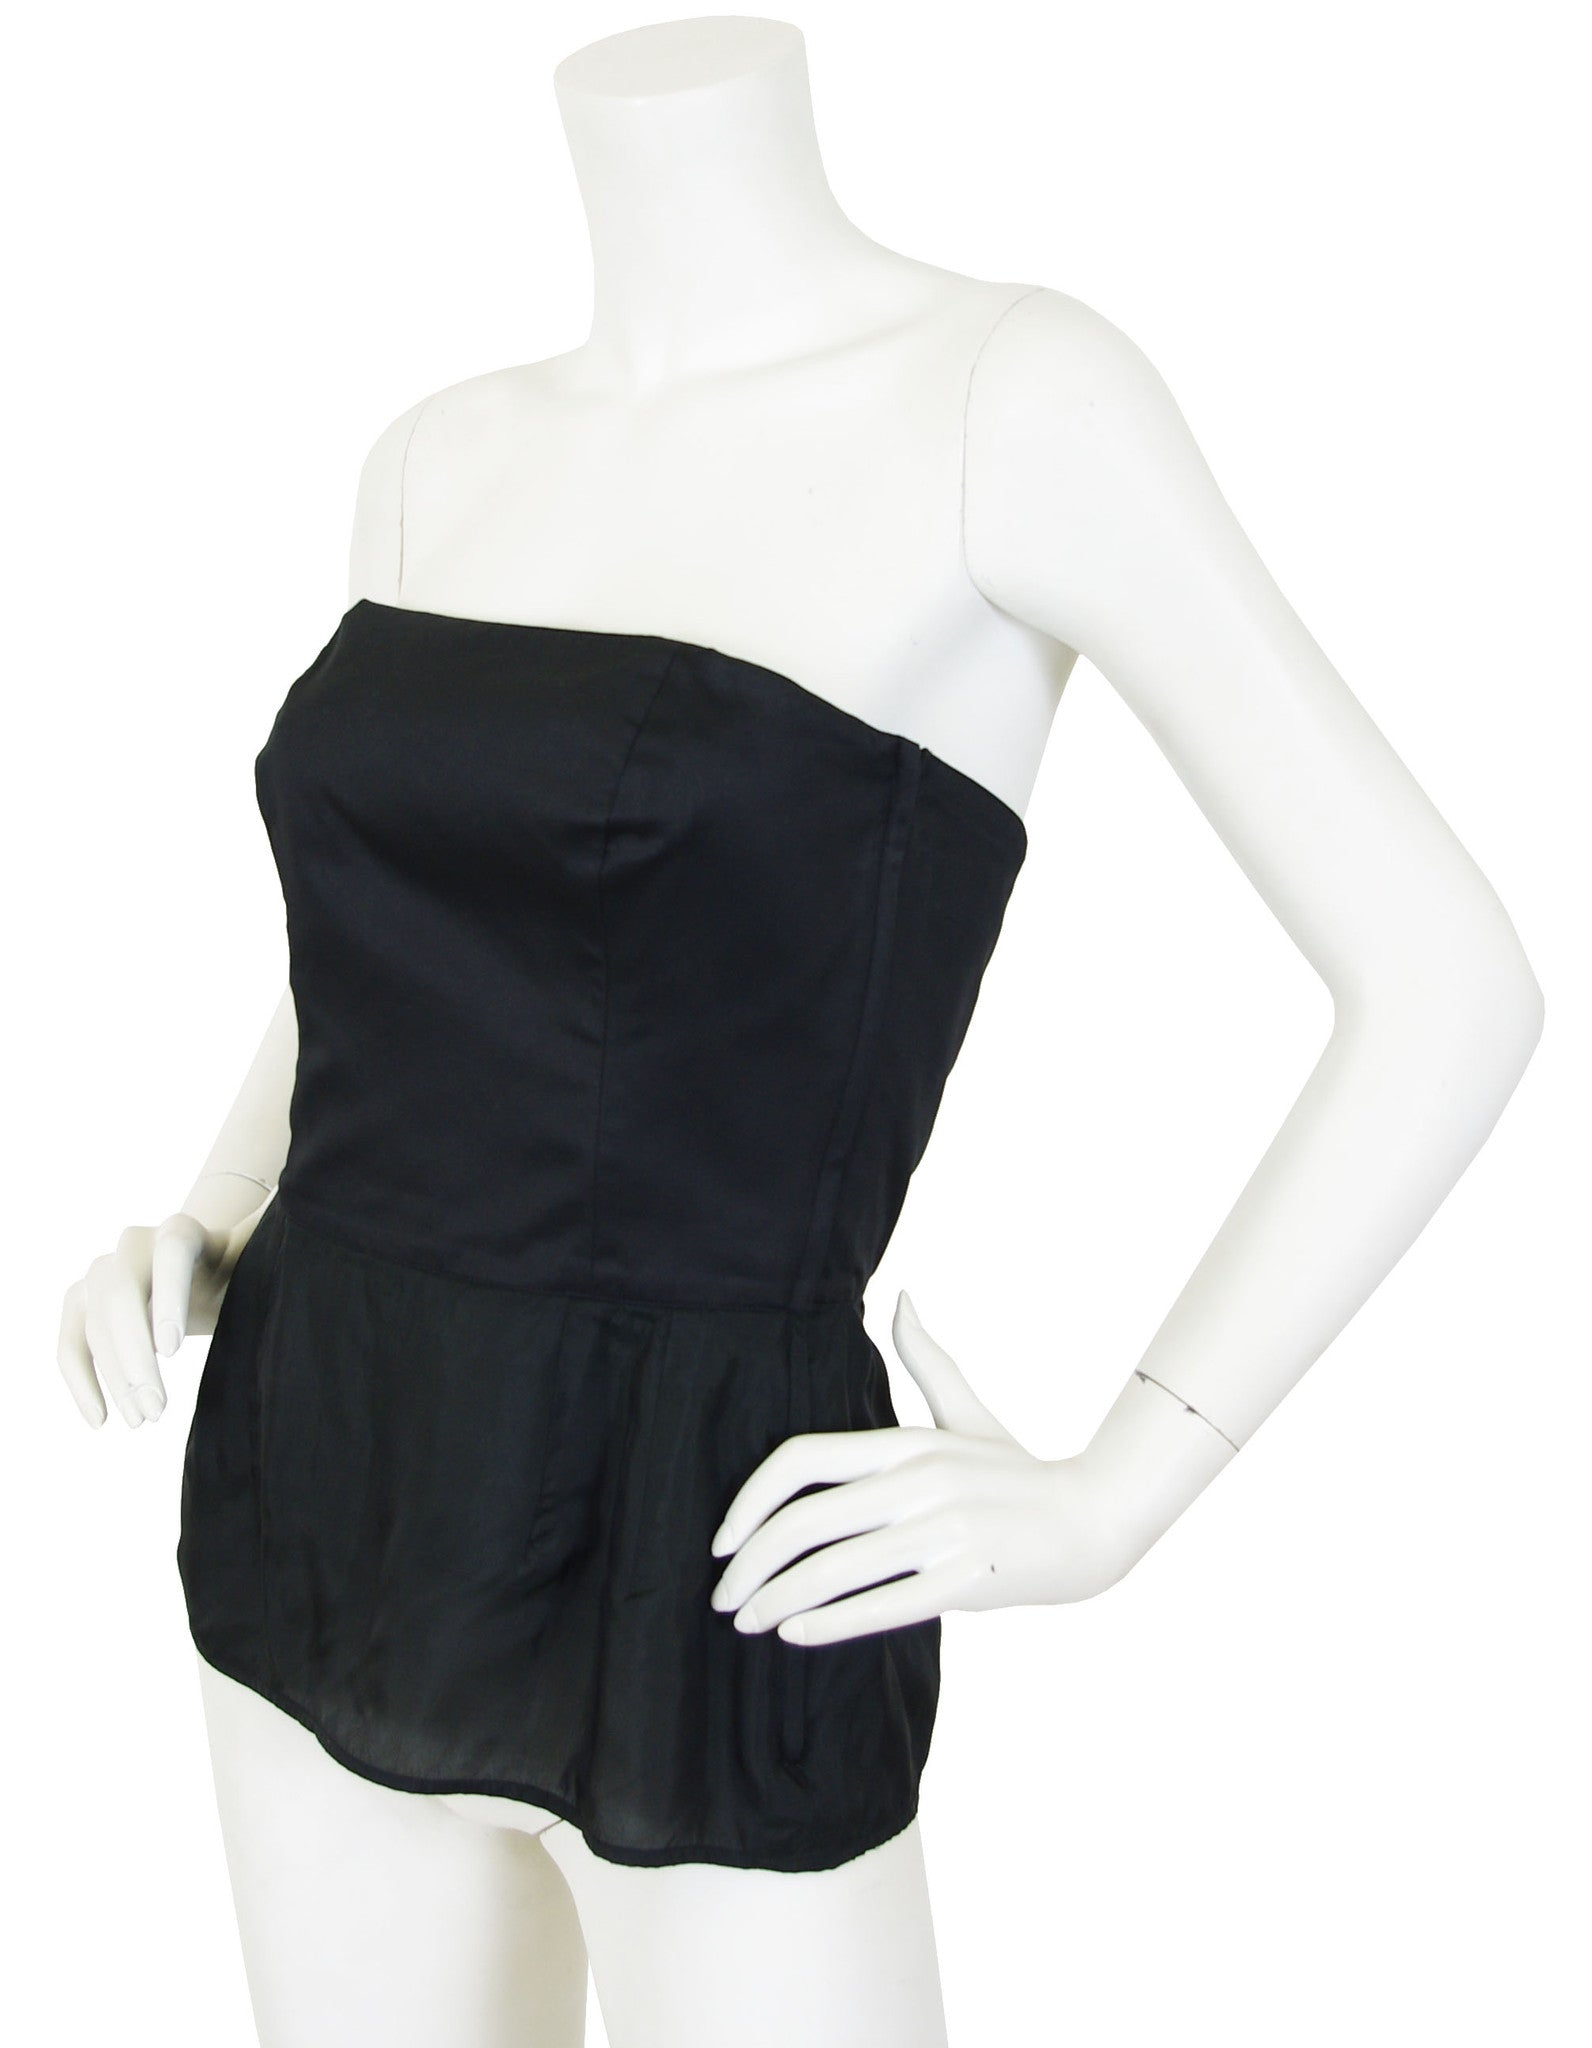 1980s Chic Black Cotton Bustier Top